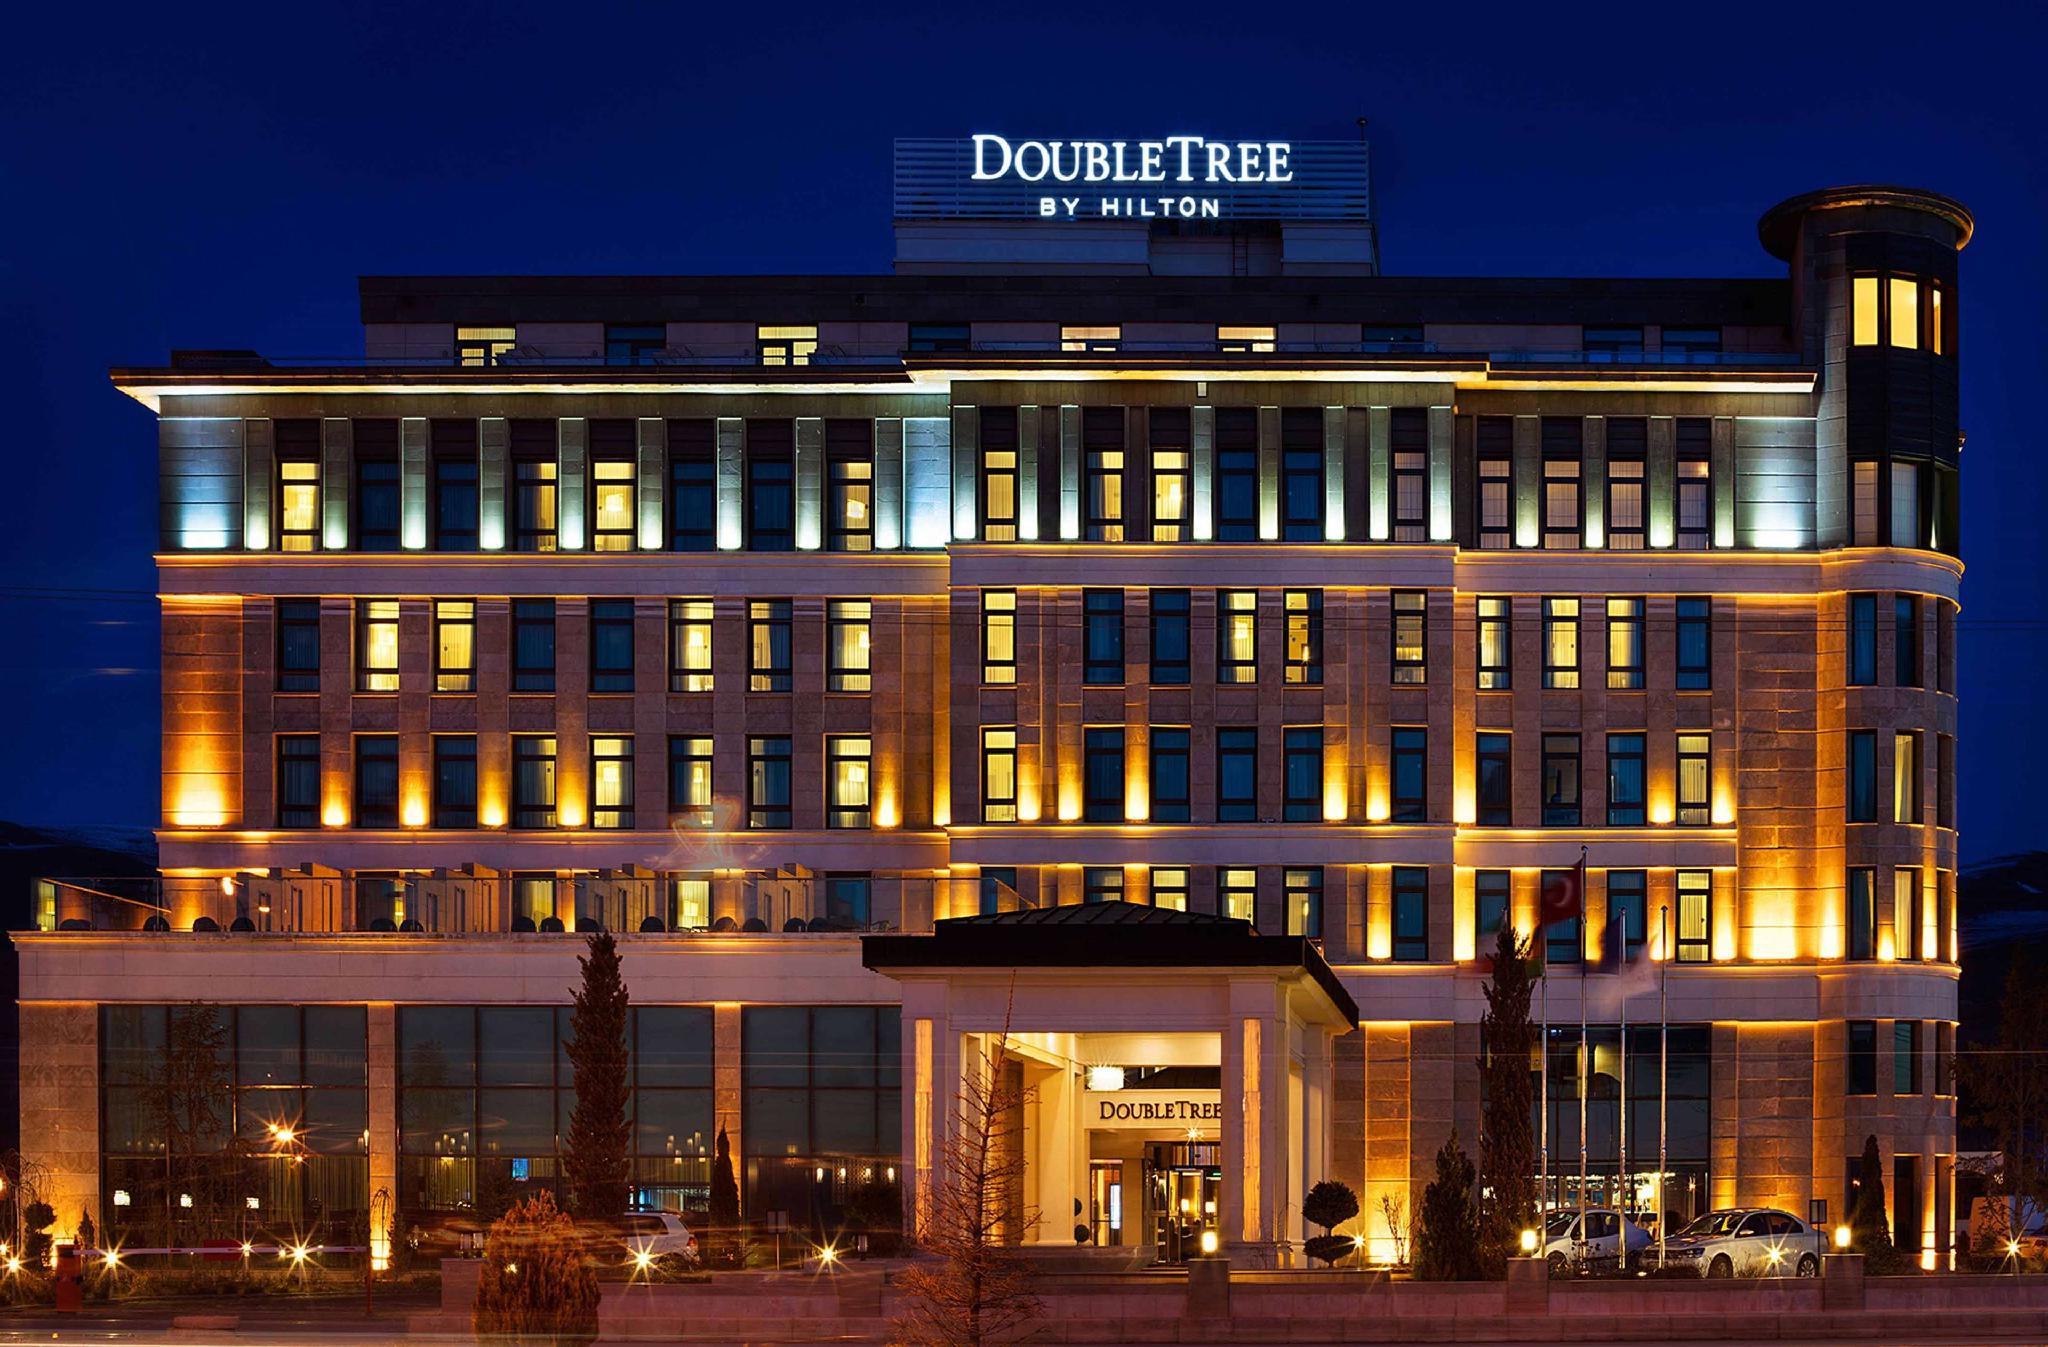 DoubleTree by Hilton Van - Picture of Hotel